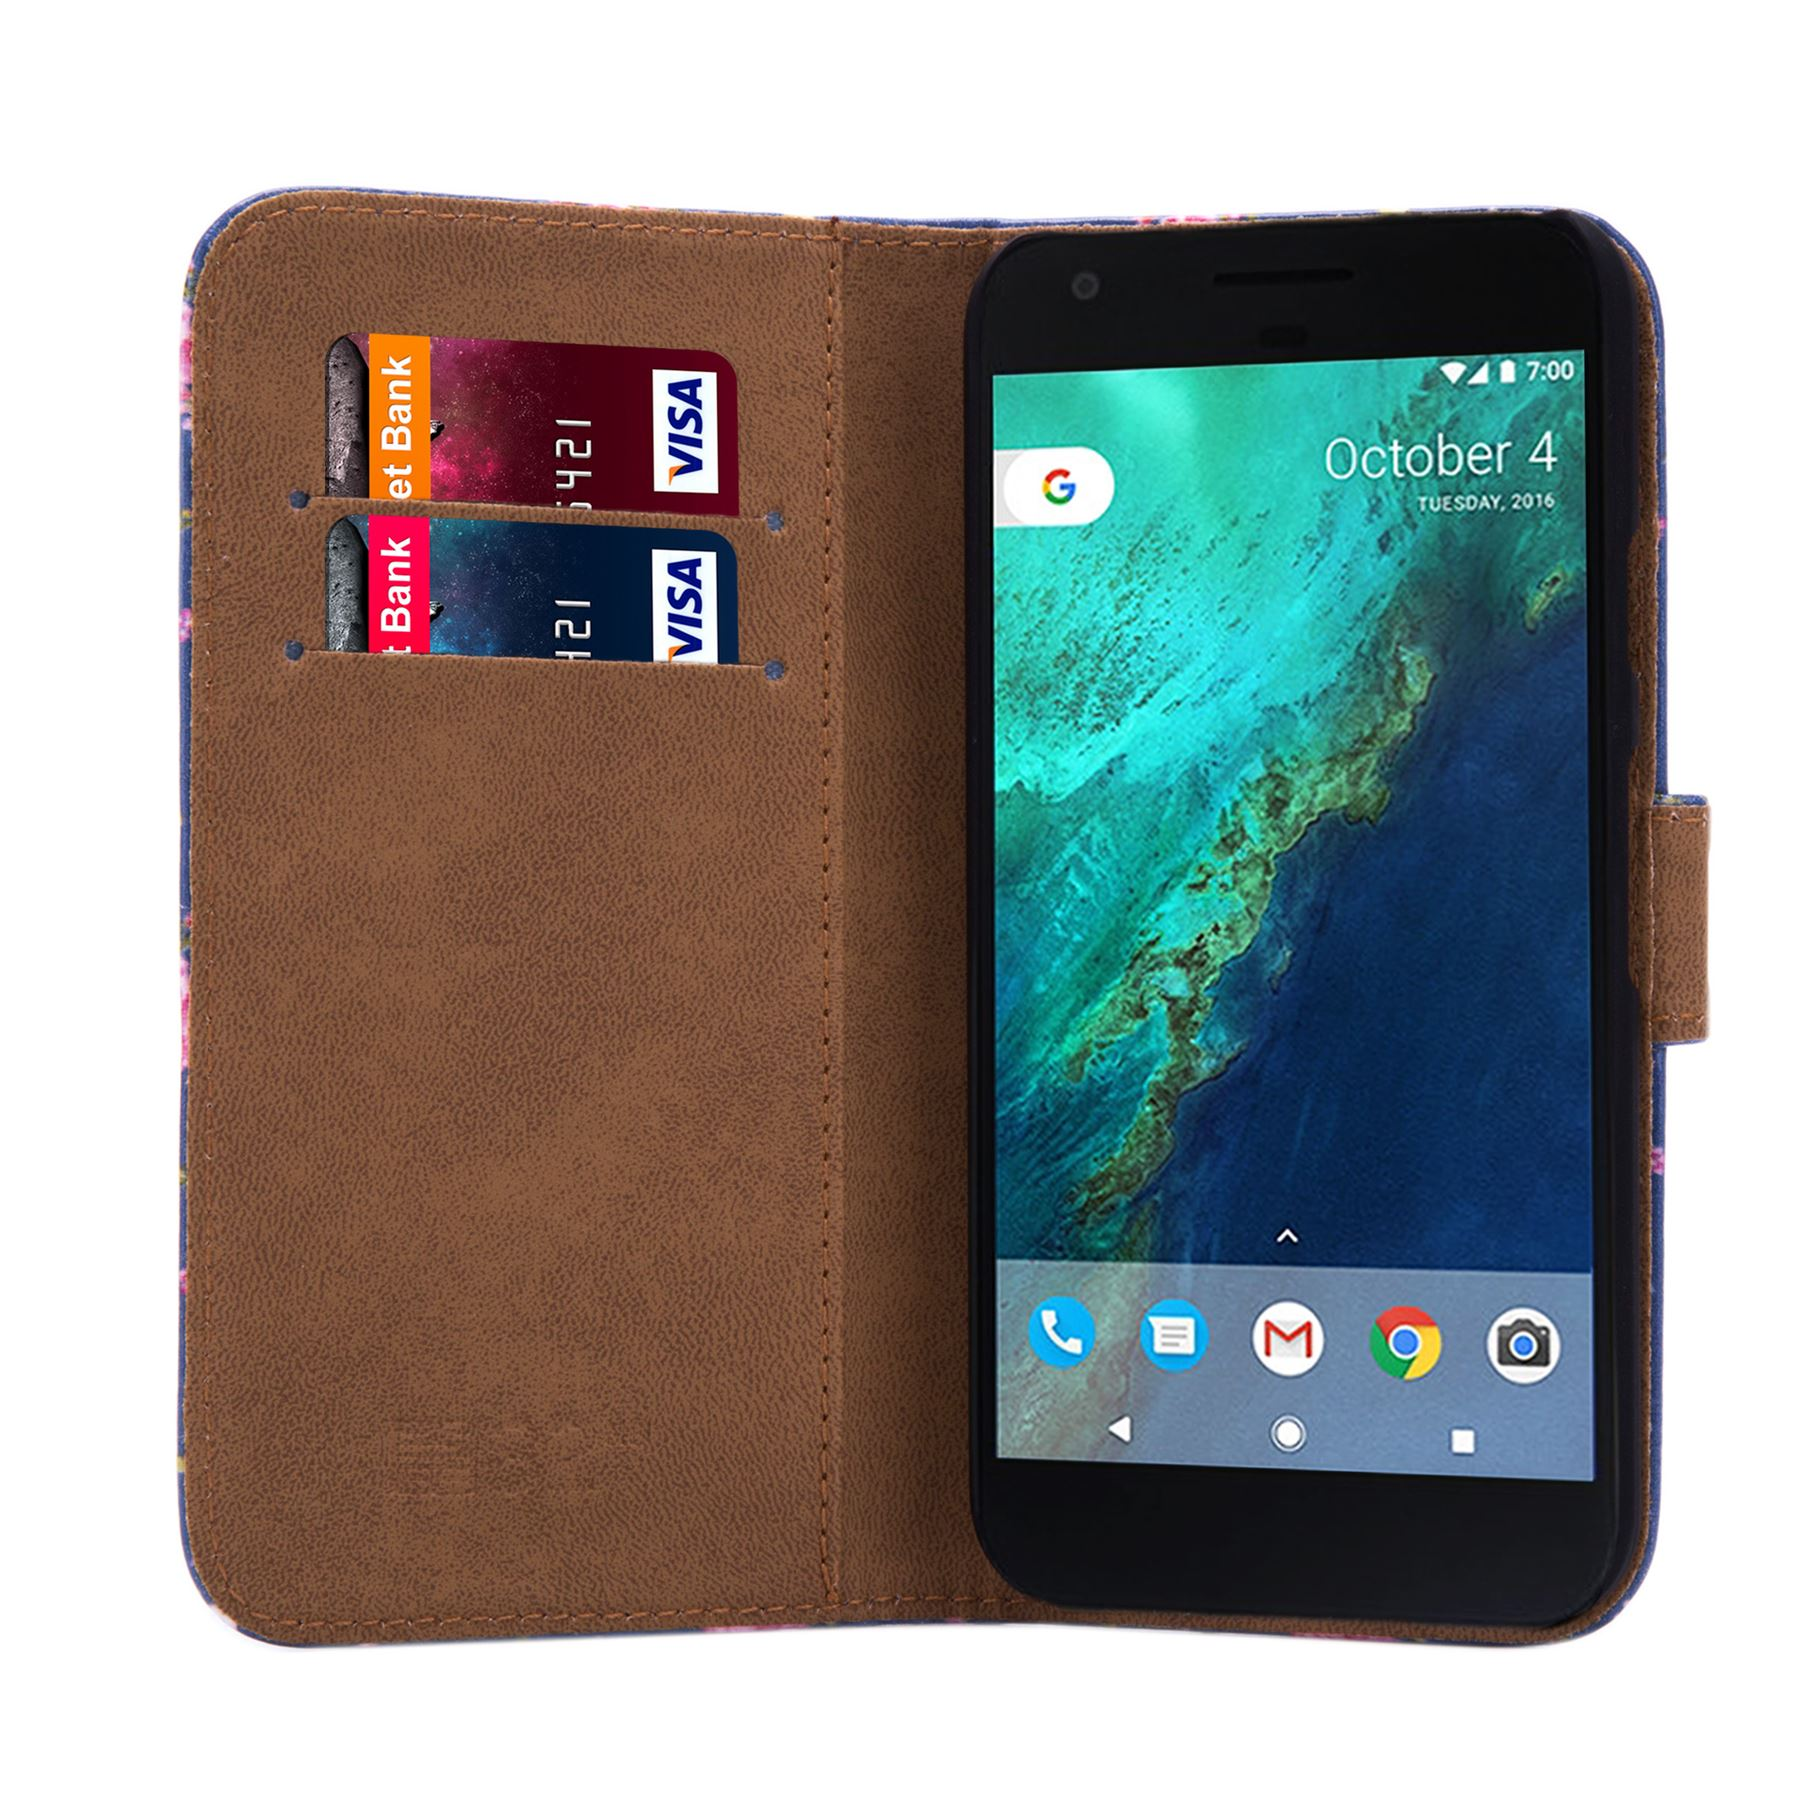 PU-Leather-Floral-Design-Book-Wallet-Case-Cover-For-Google-Pixel thumbnail 47